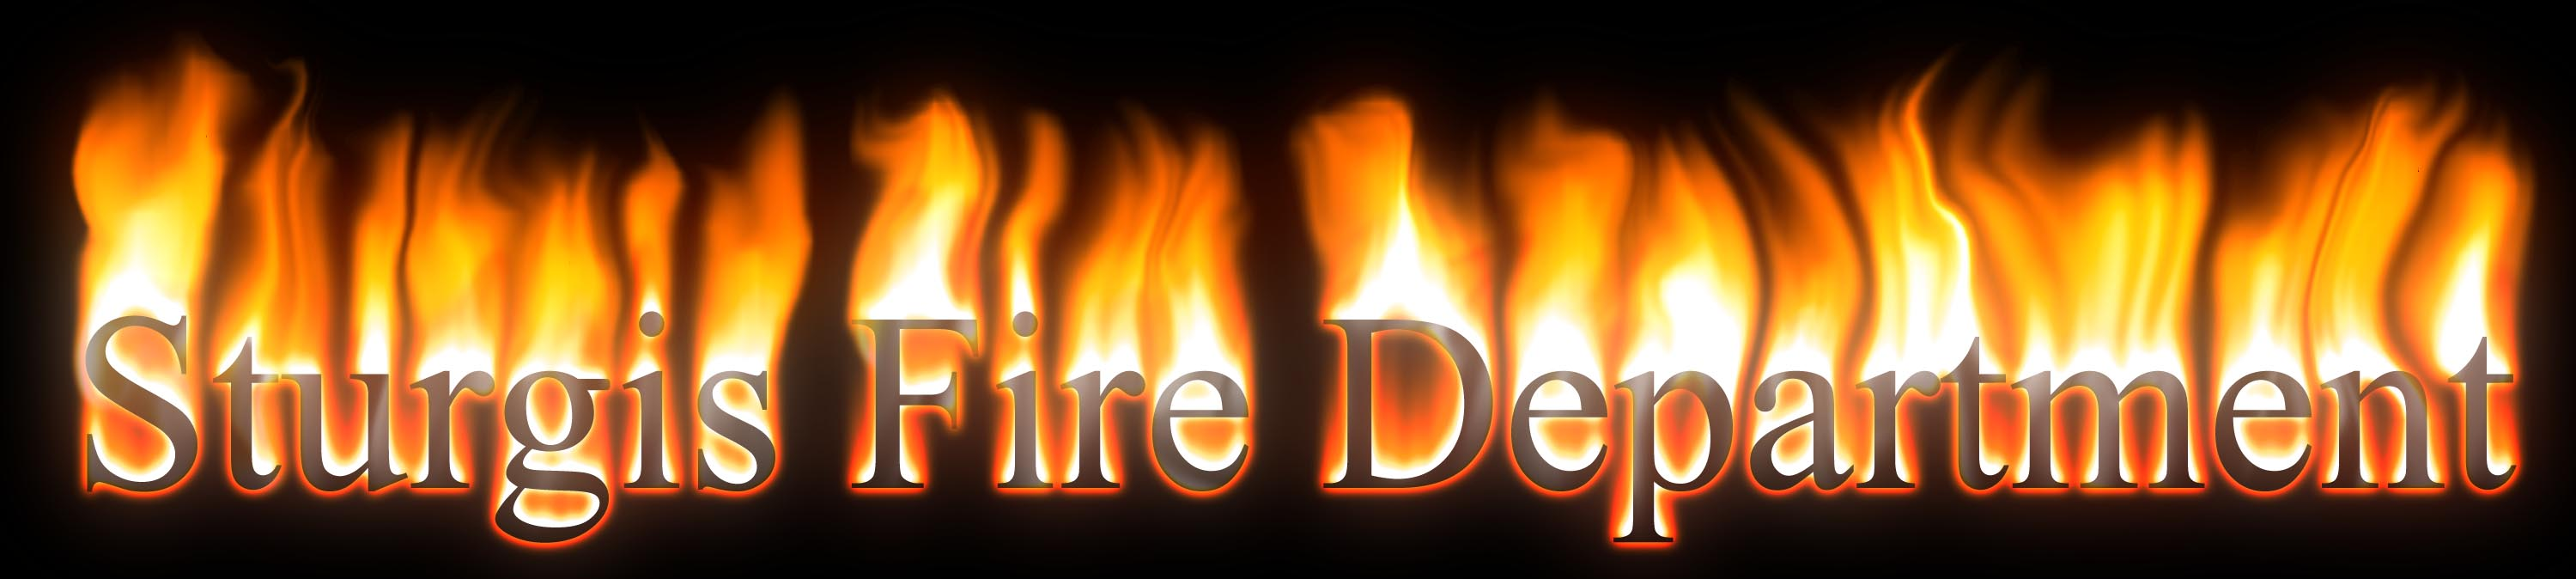 SFD name with flames